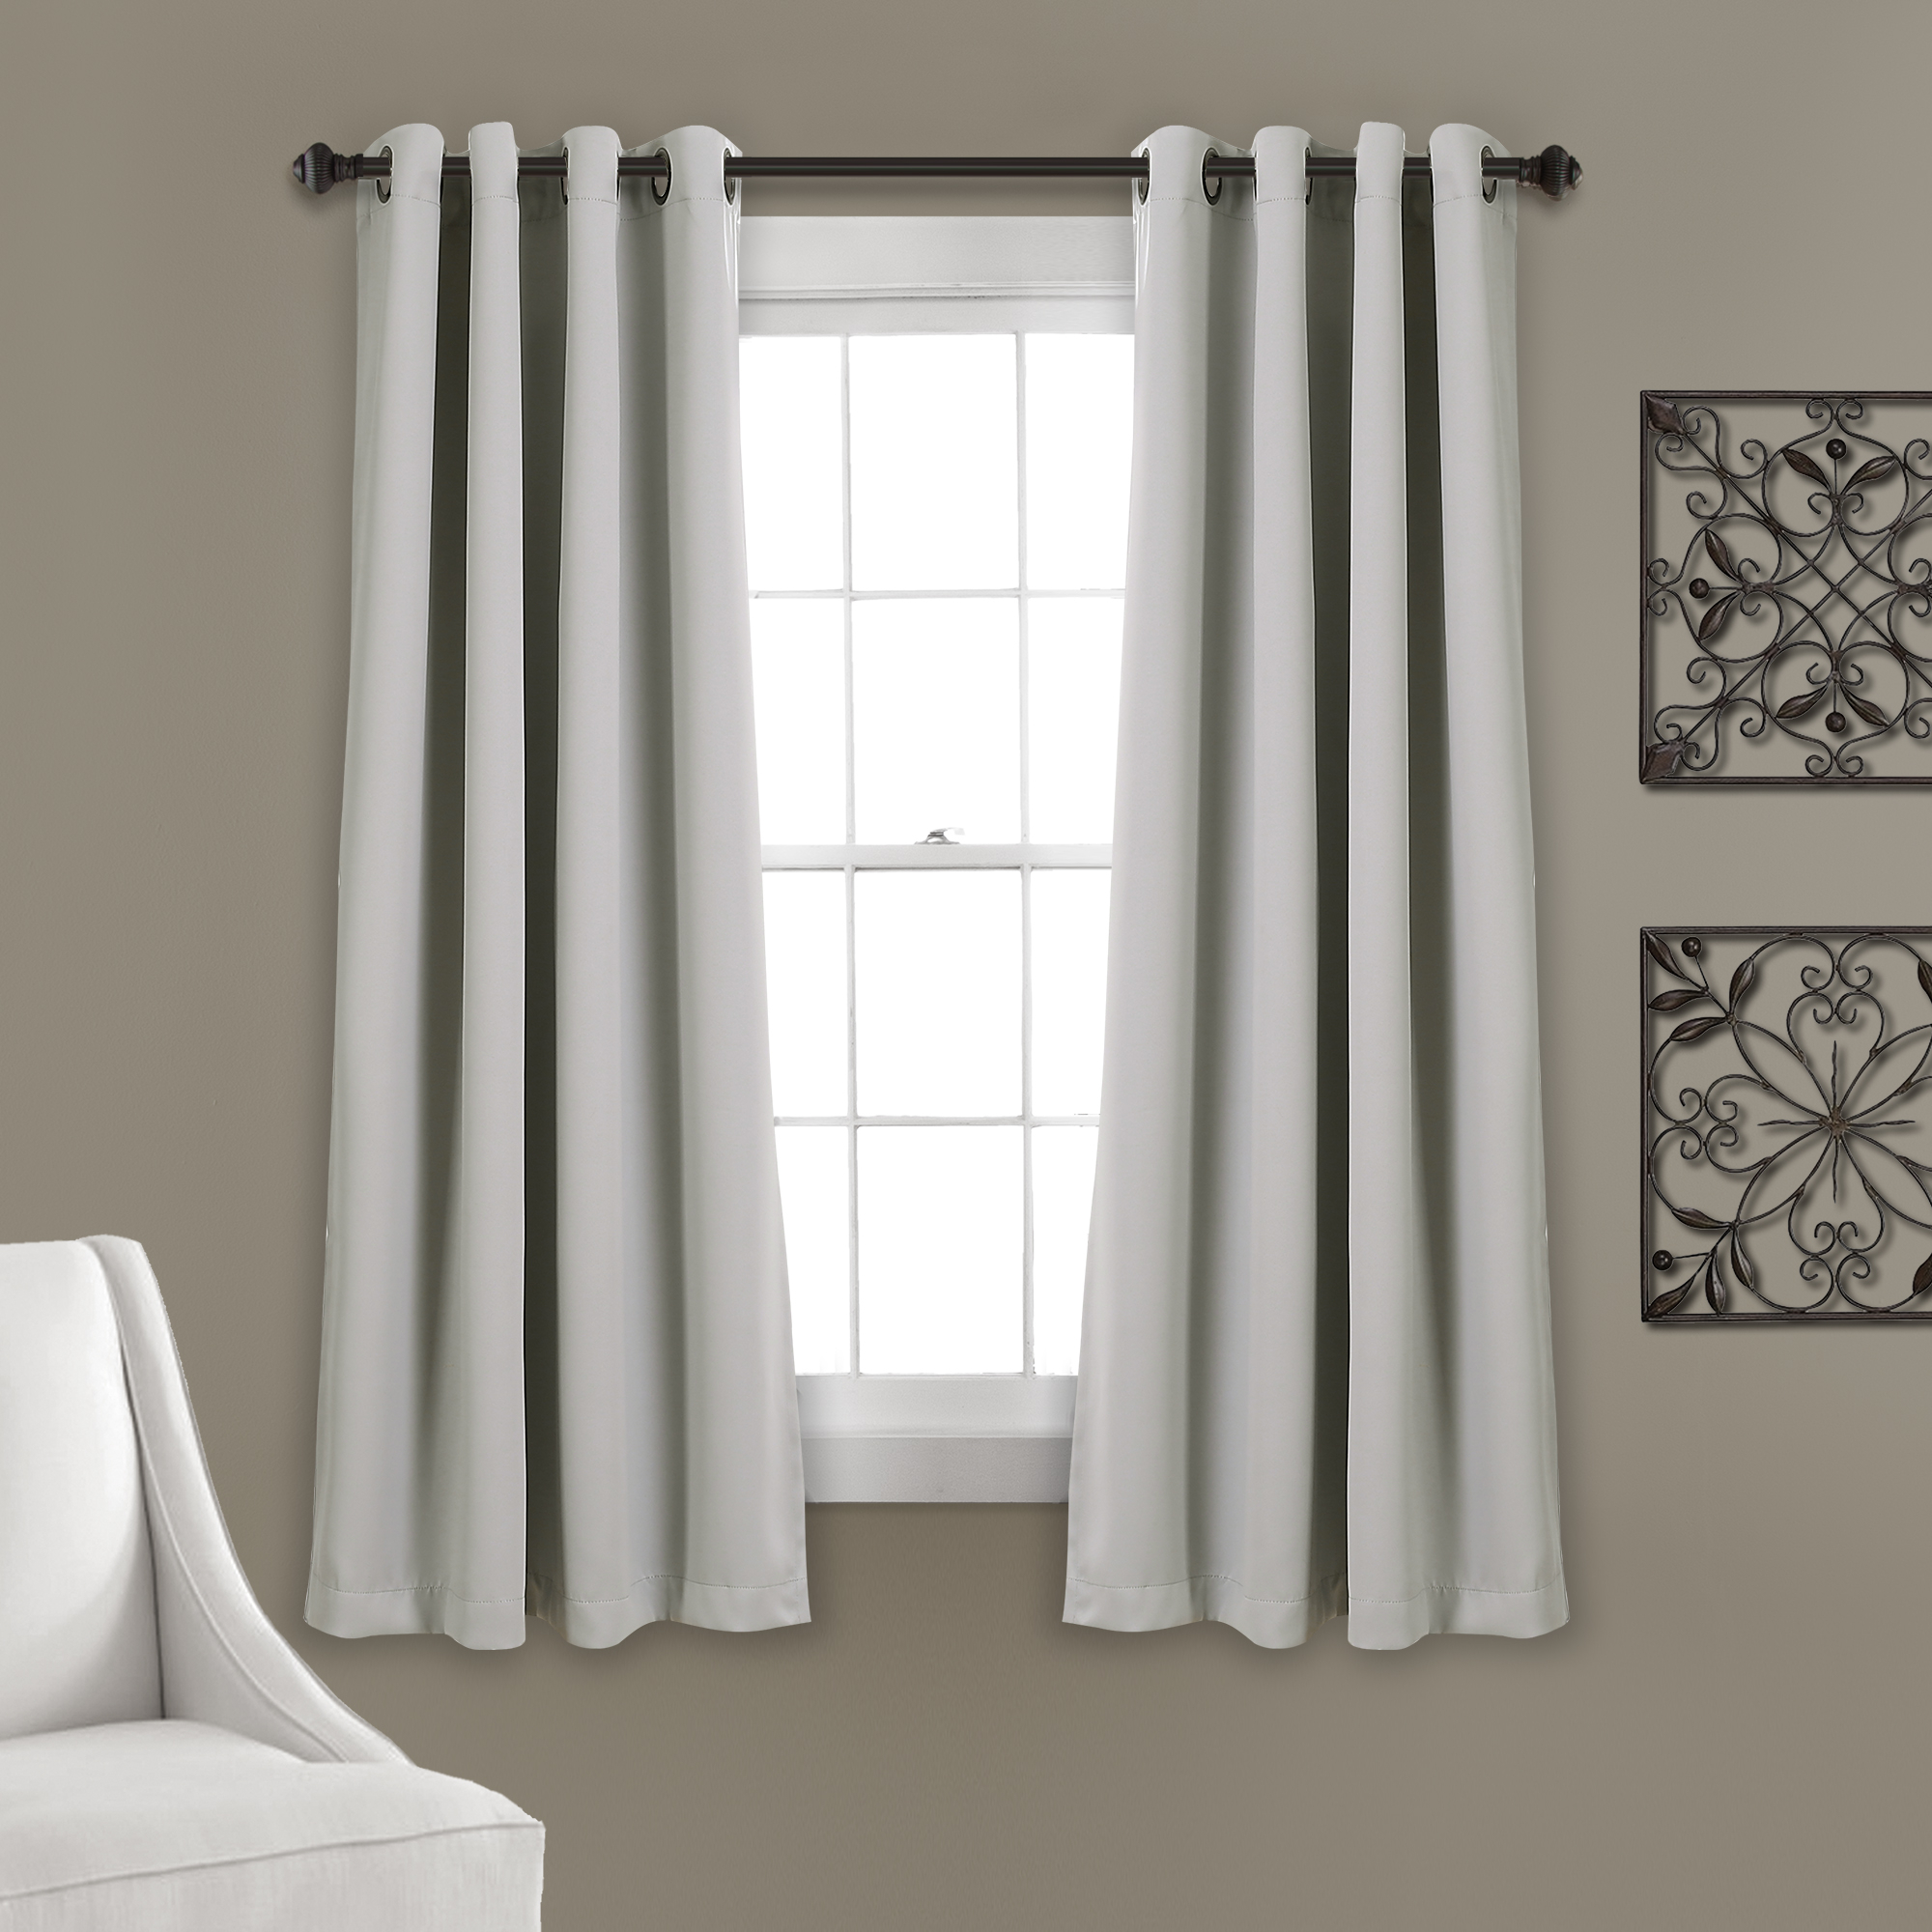 Details About Lush Dcor Insulated Grommet Blackout Curtain Panels Pink Pair Set 52X63 For Insulated Grommet Blackout Curtain Panel Pairs (View 7 of 20)